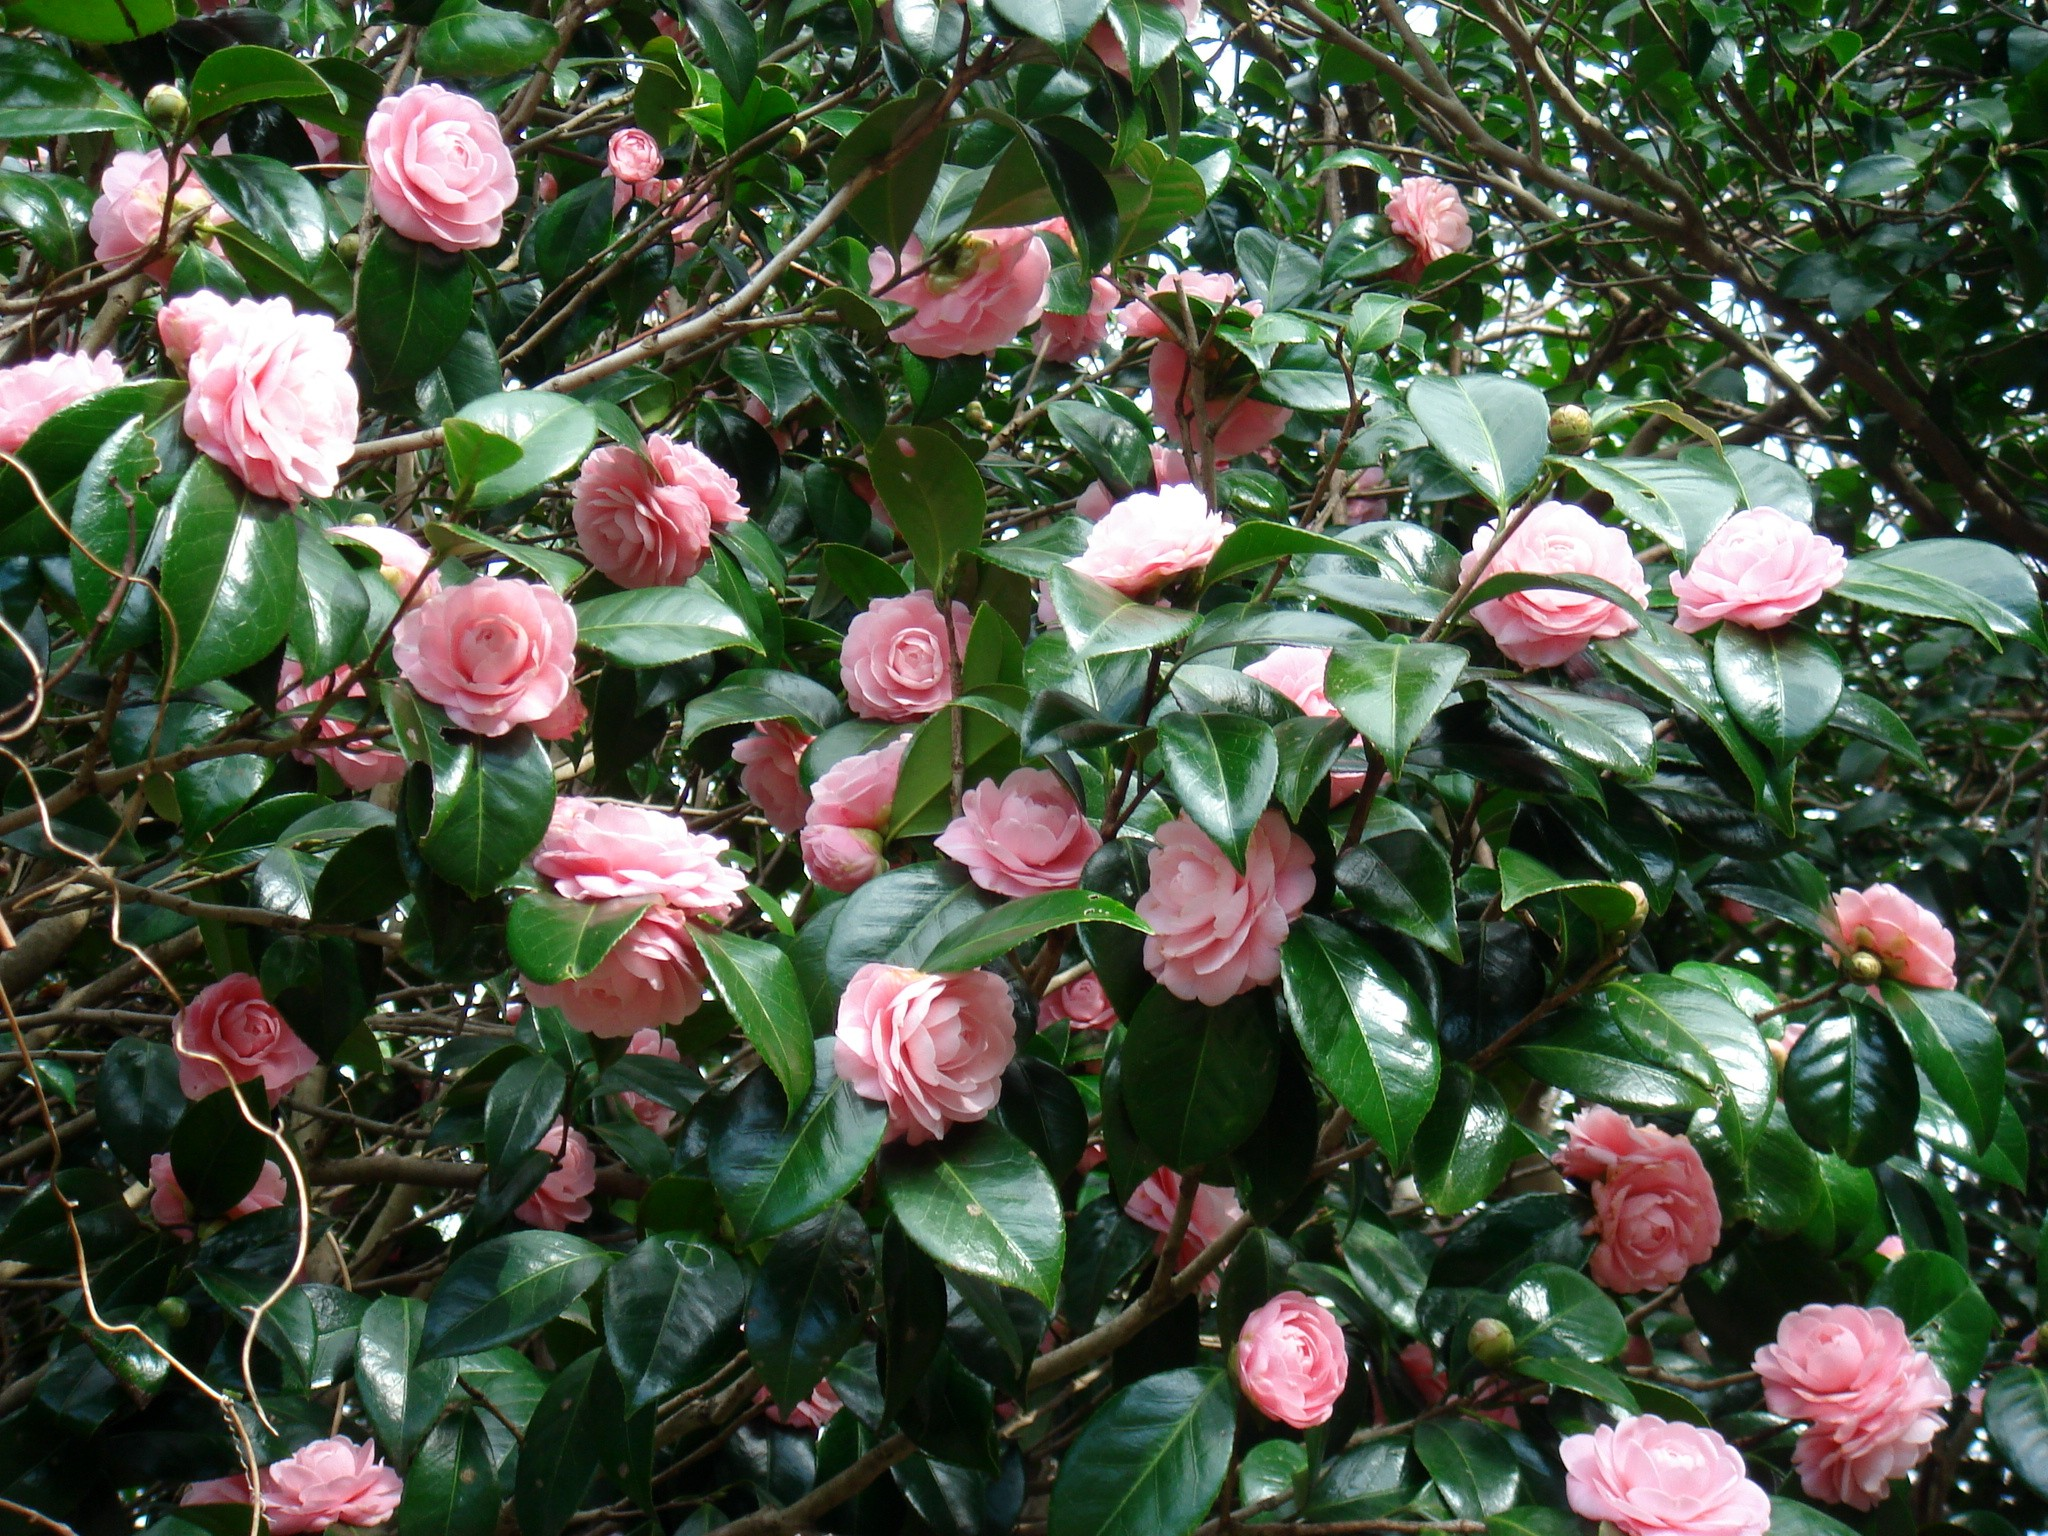 Camellia japonica backgrounds full hd pictures - Camelia planta ...